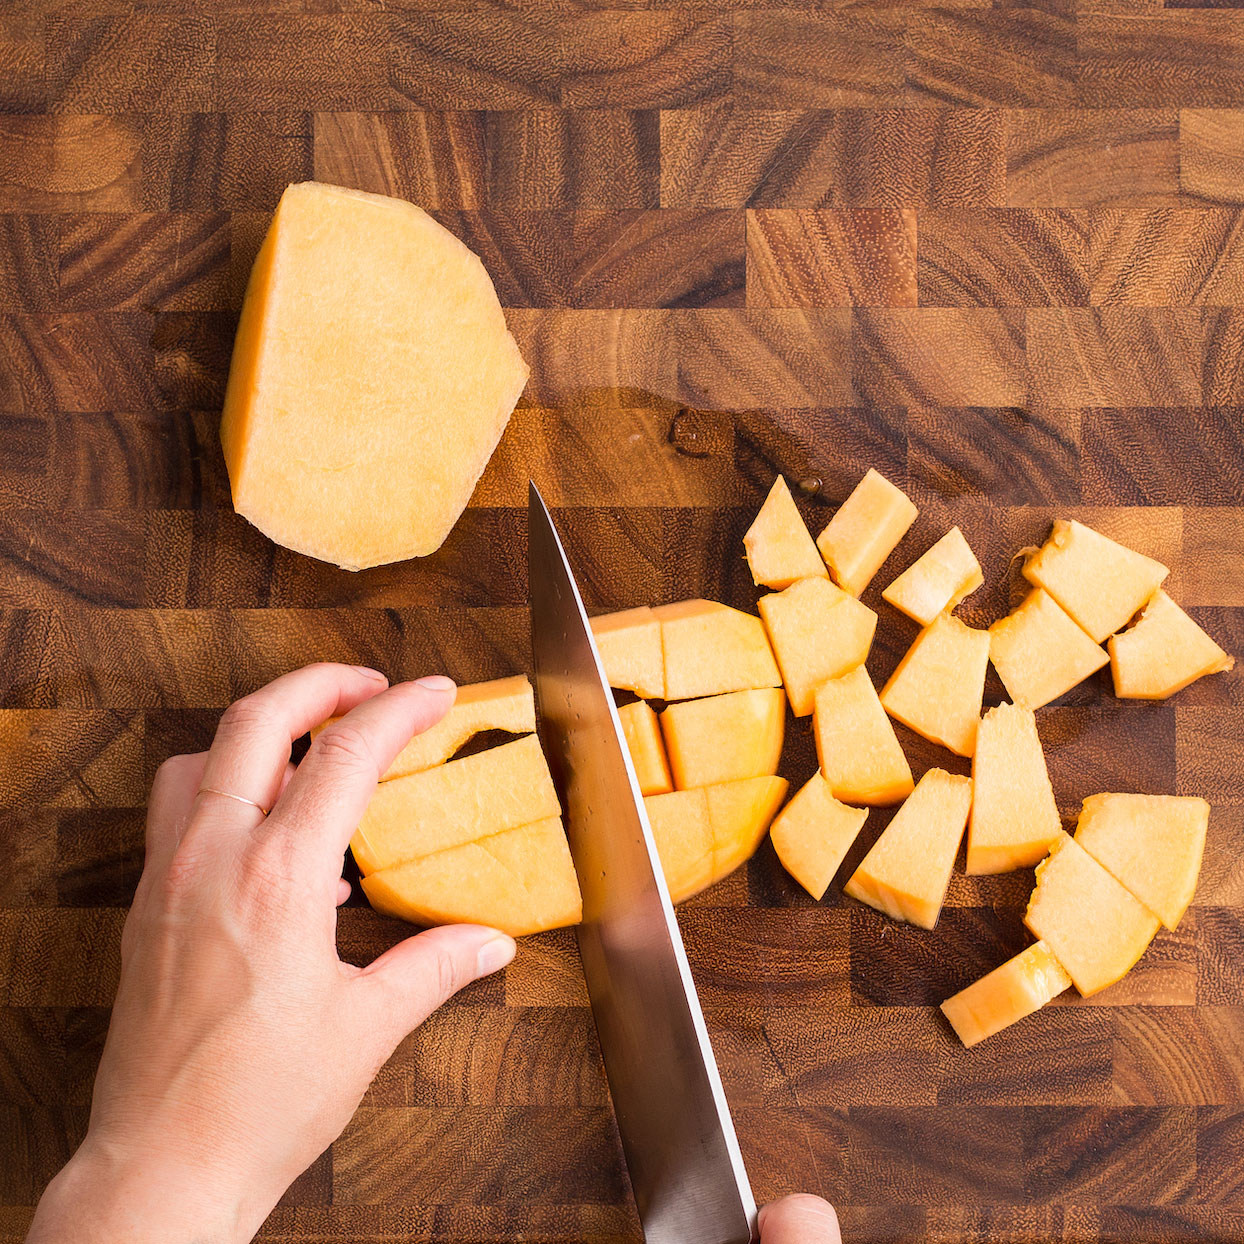 Cutting cantaloupe into cubes on a wooden cutting board